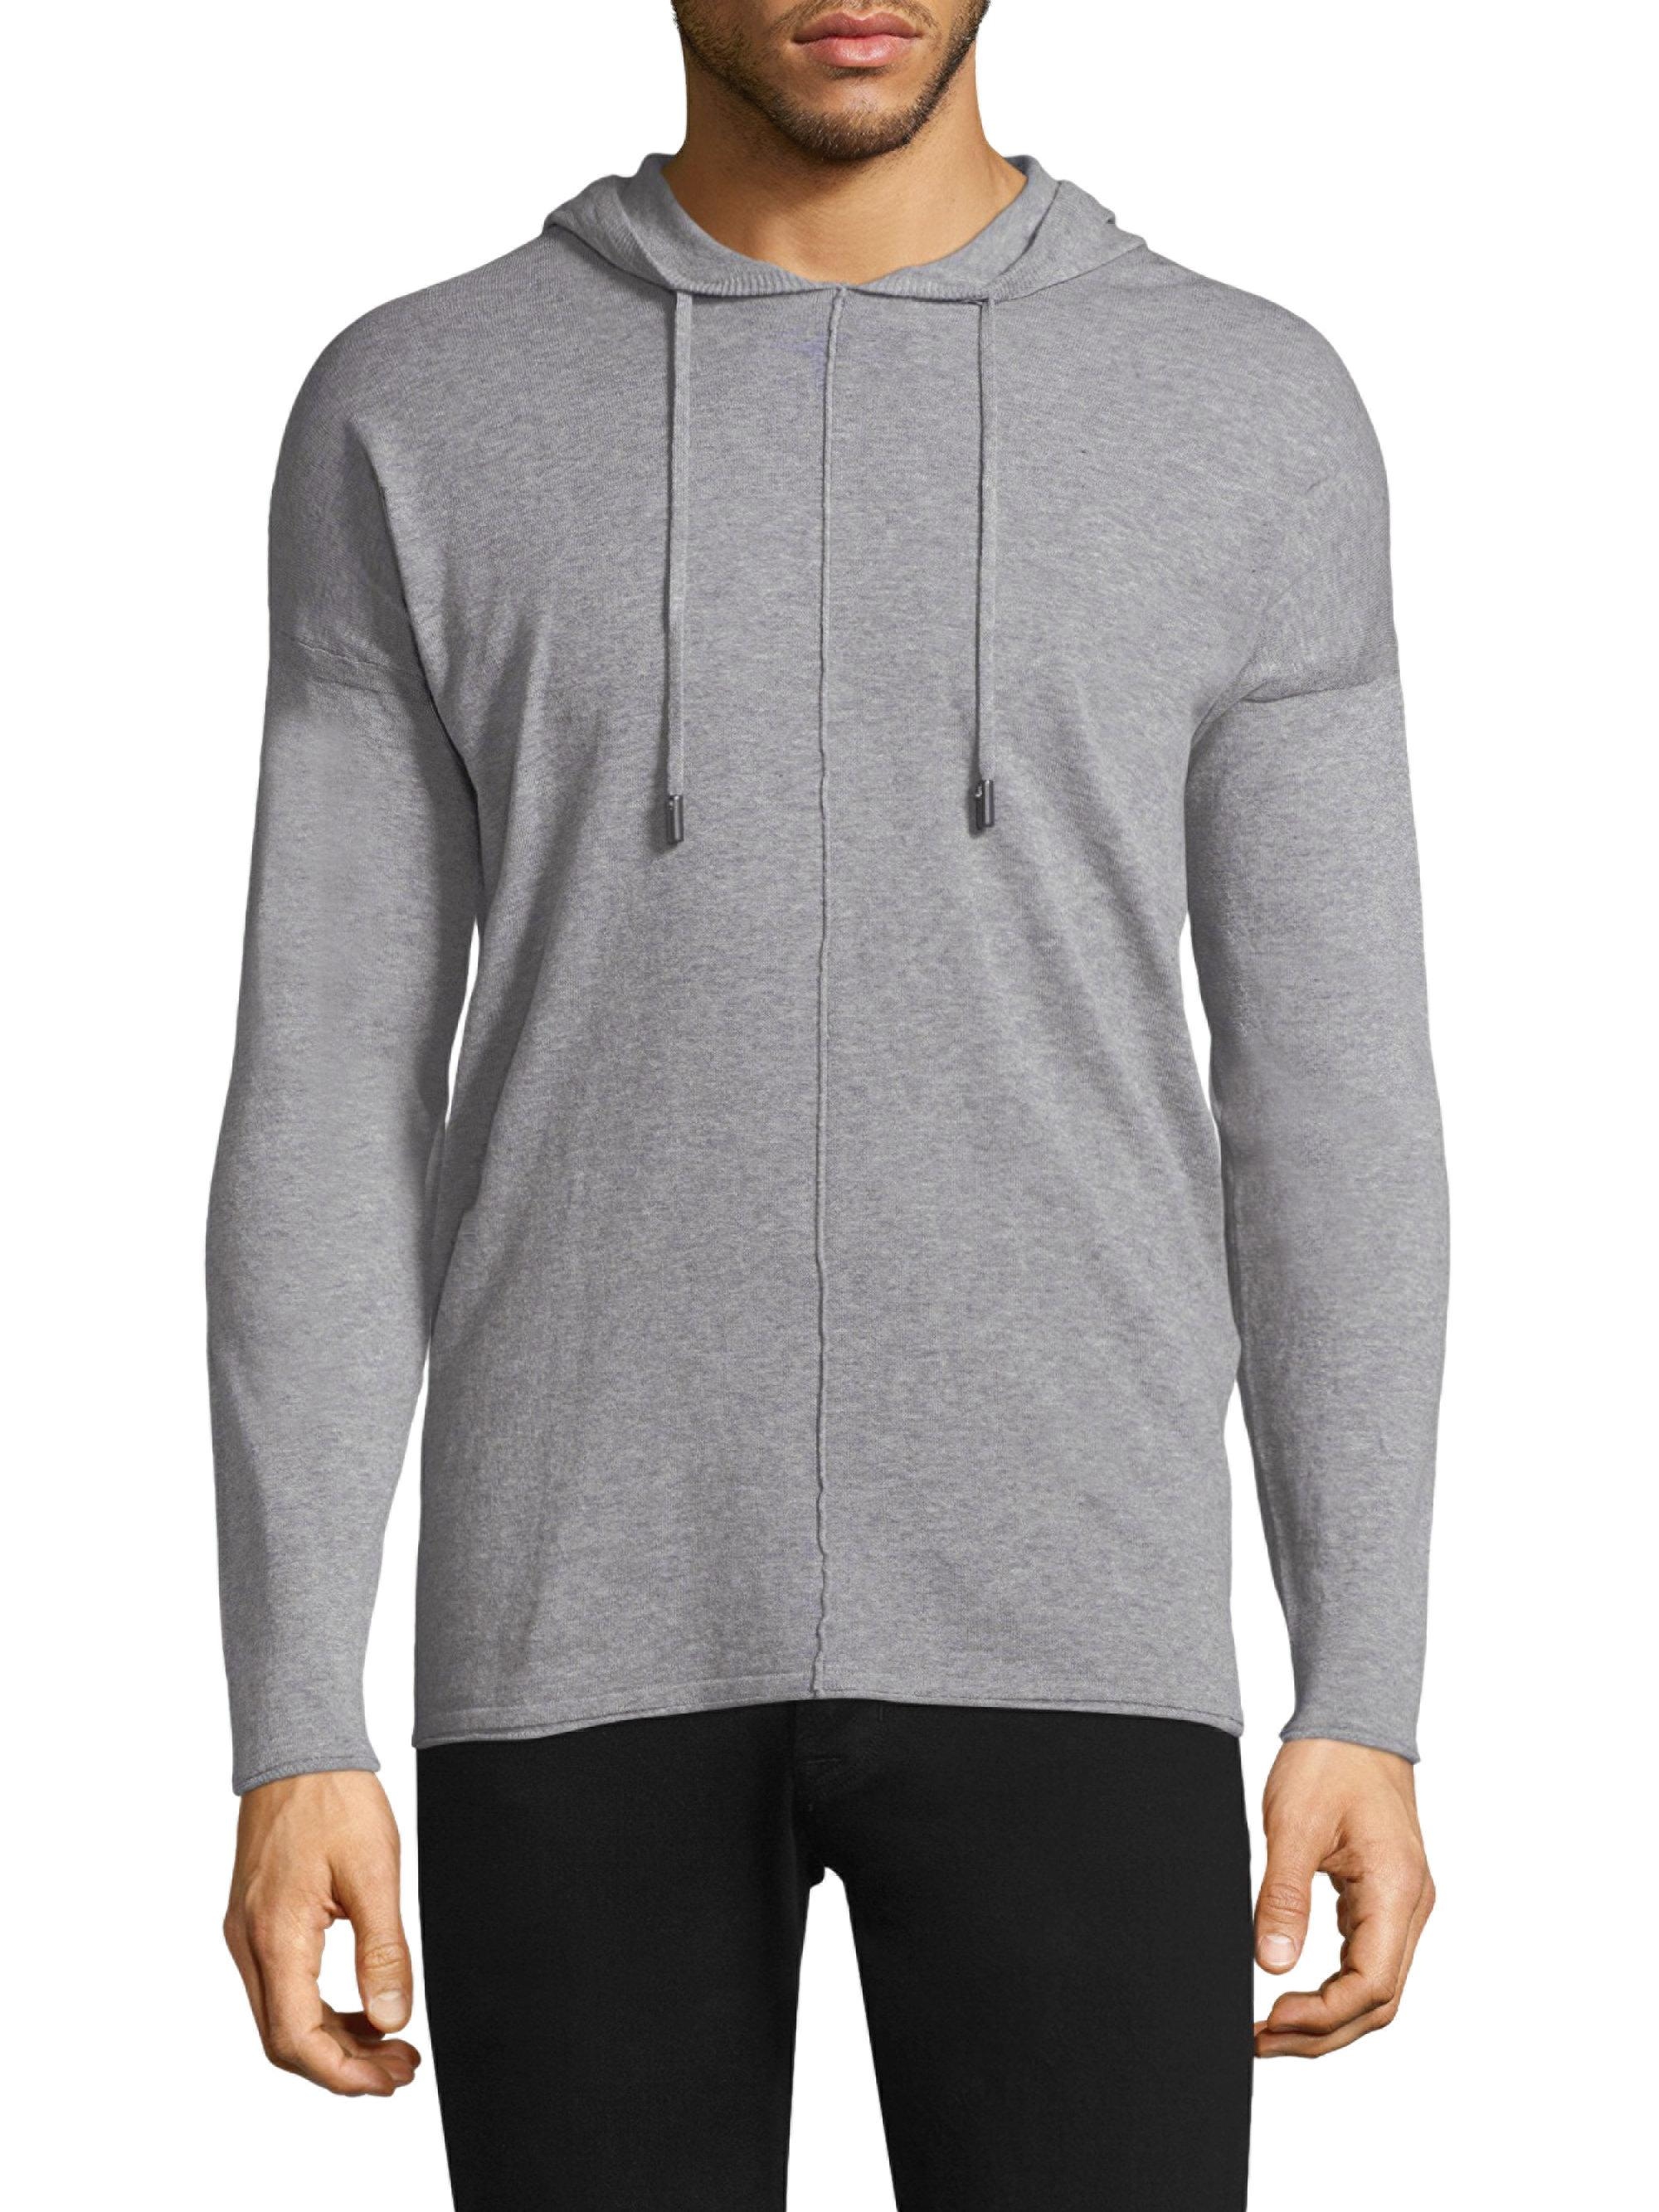 c727e3bc427 Lyst - Diesel Black Gold Mélange Hooded Sweater in Gray for Men